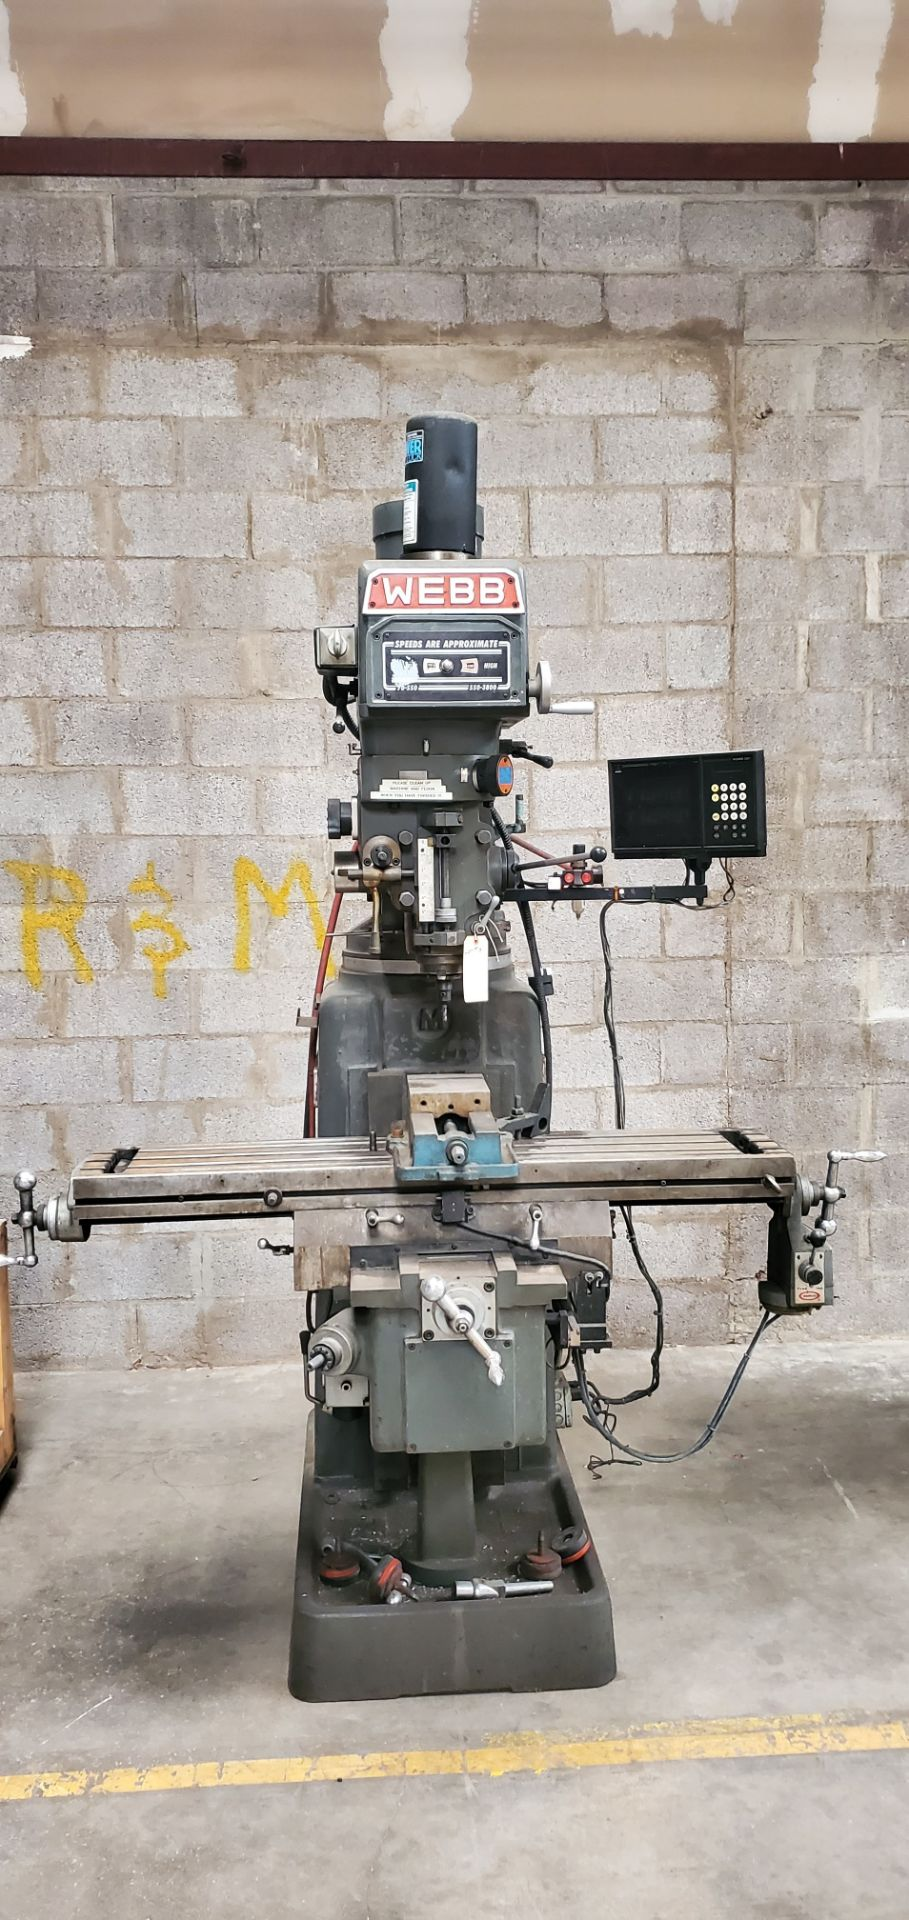 Lot 3 - WEBB Variable Speed Vertical Milling Machine, Model #5K W/Wizard 350+, 230 Volts 3 Phase Motor